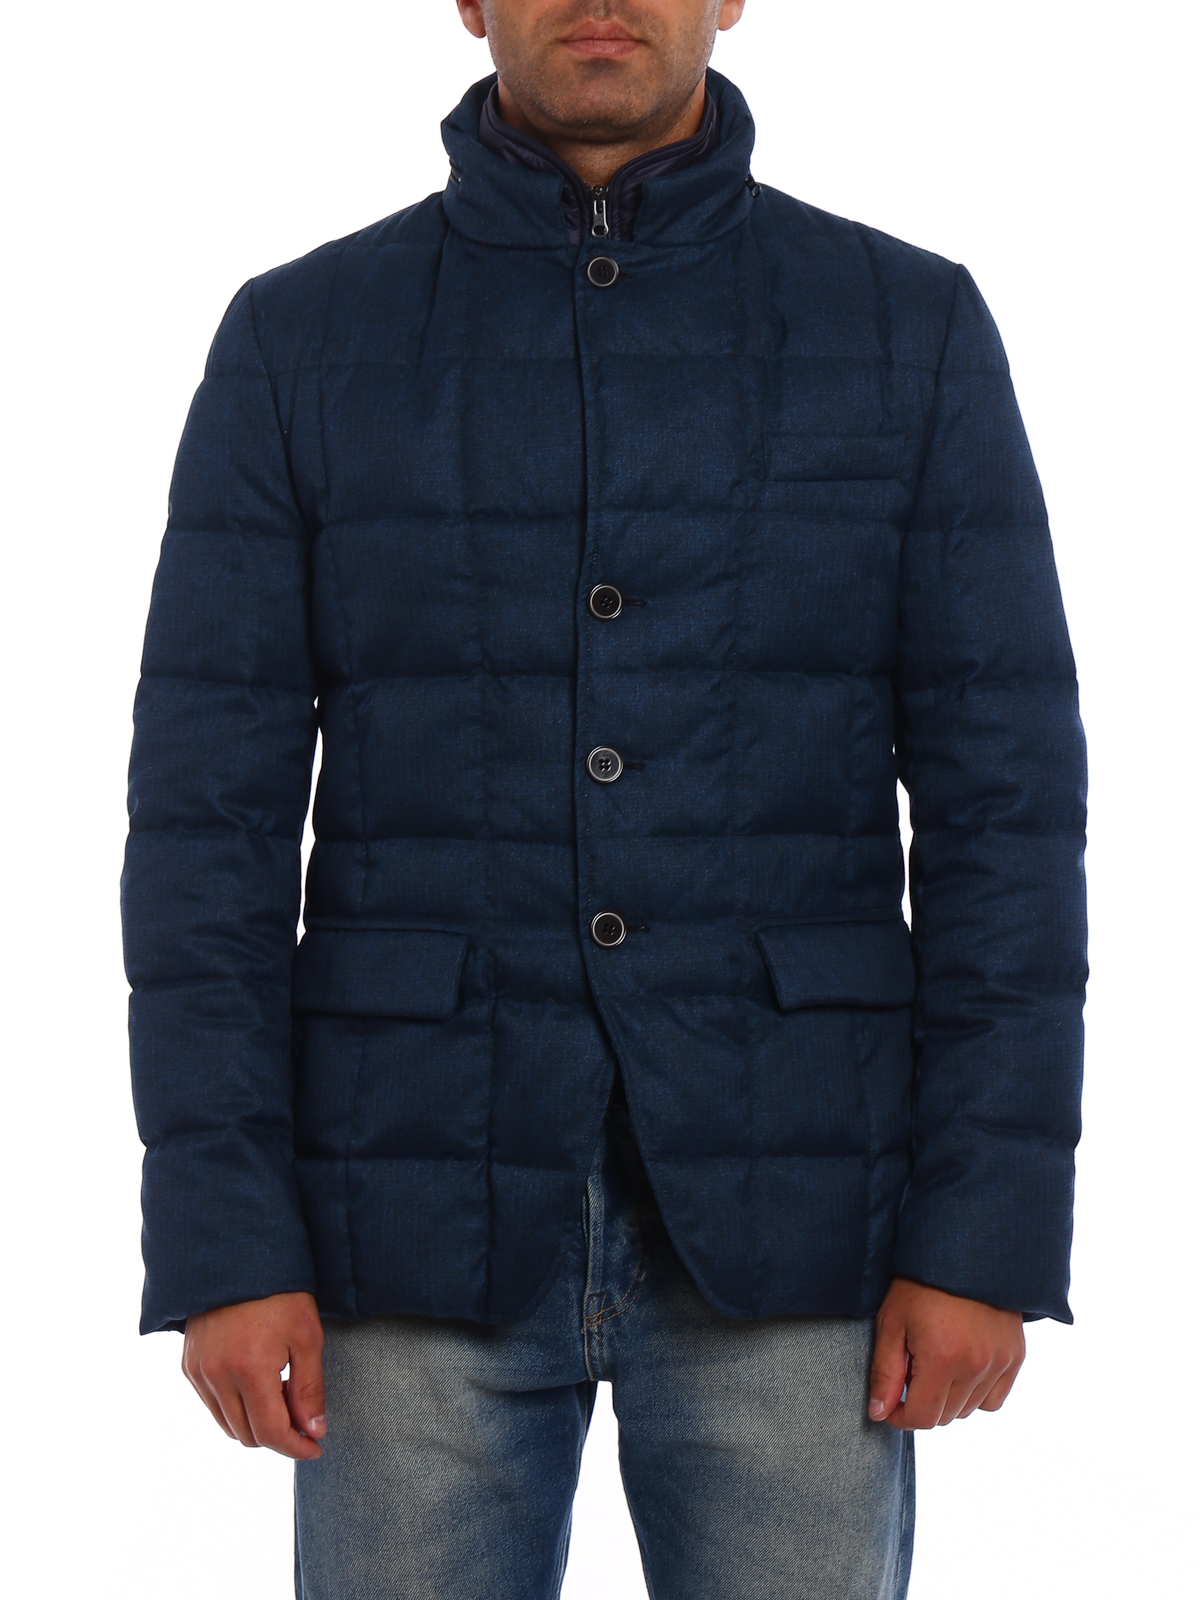 iKRIX Fay: padded jackets - Blue herringbone padded jacket